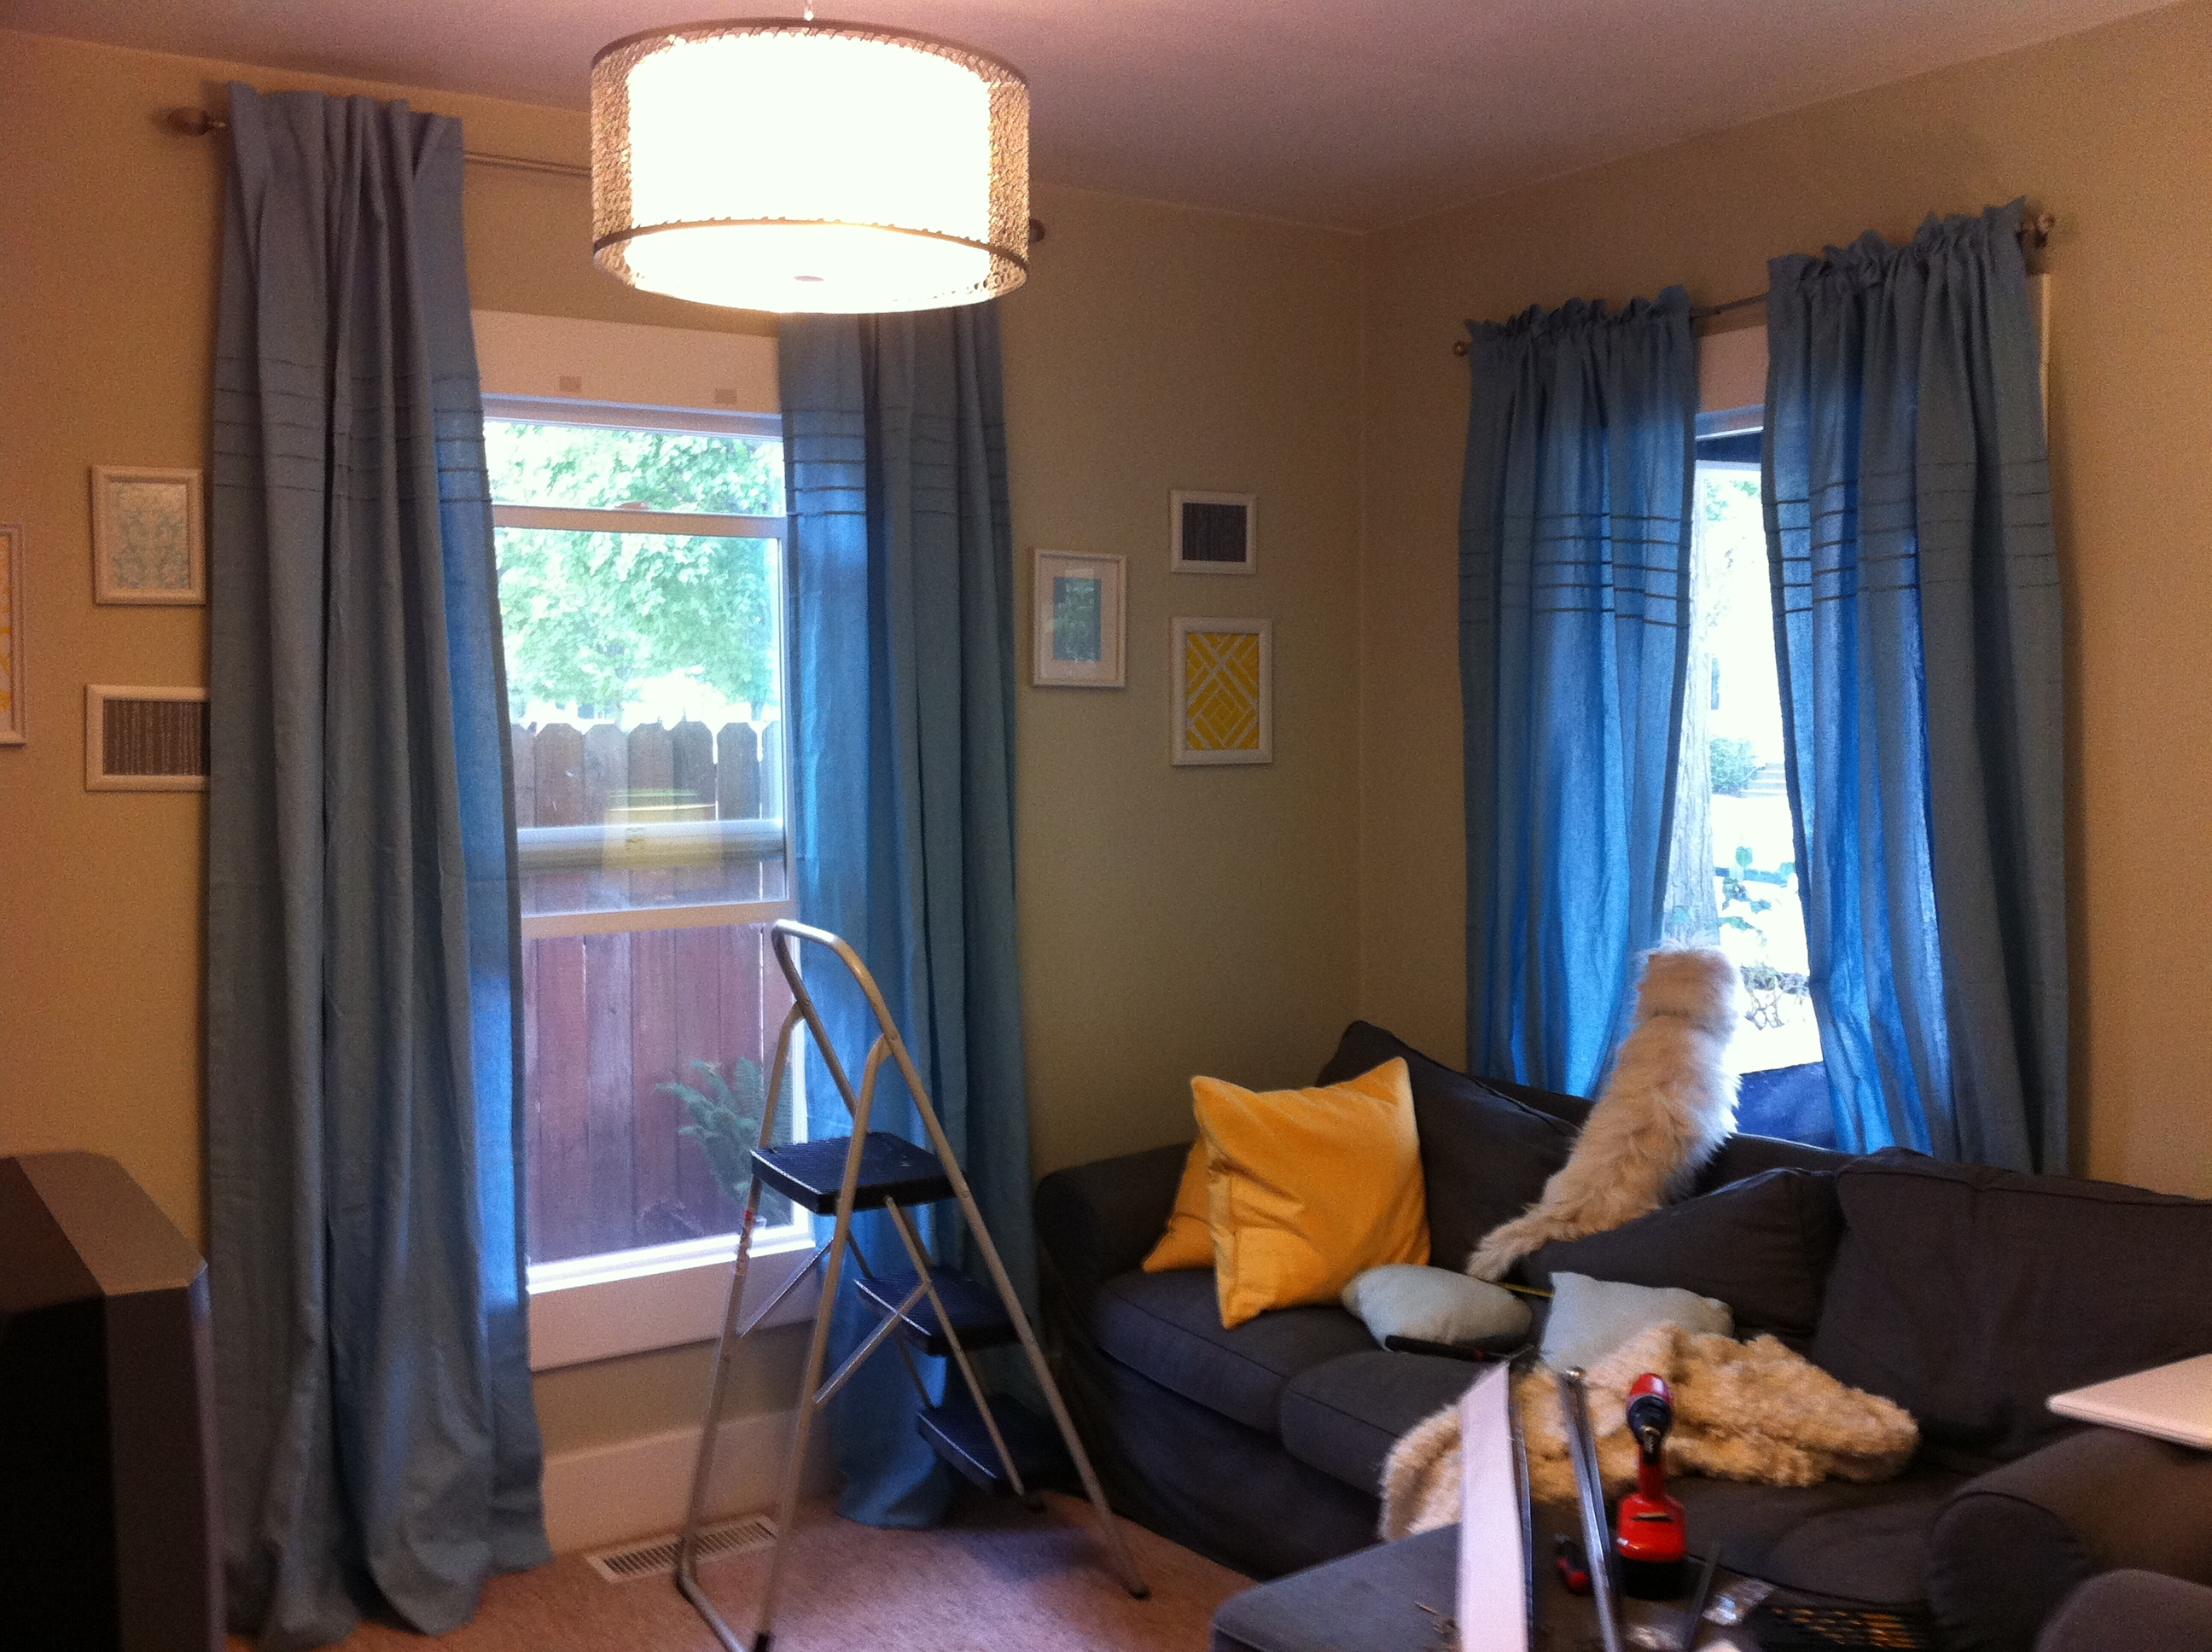 Hanging Curtains Best 25 How To Hang Curtains Ideas Only On For Hanging Curtains (View 8 of 25)